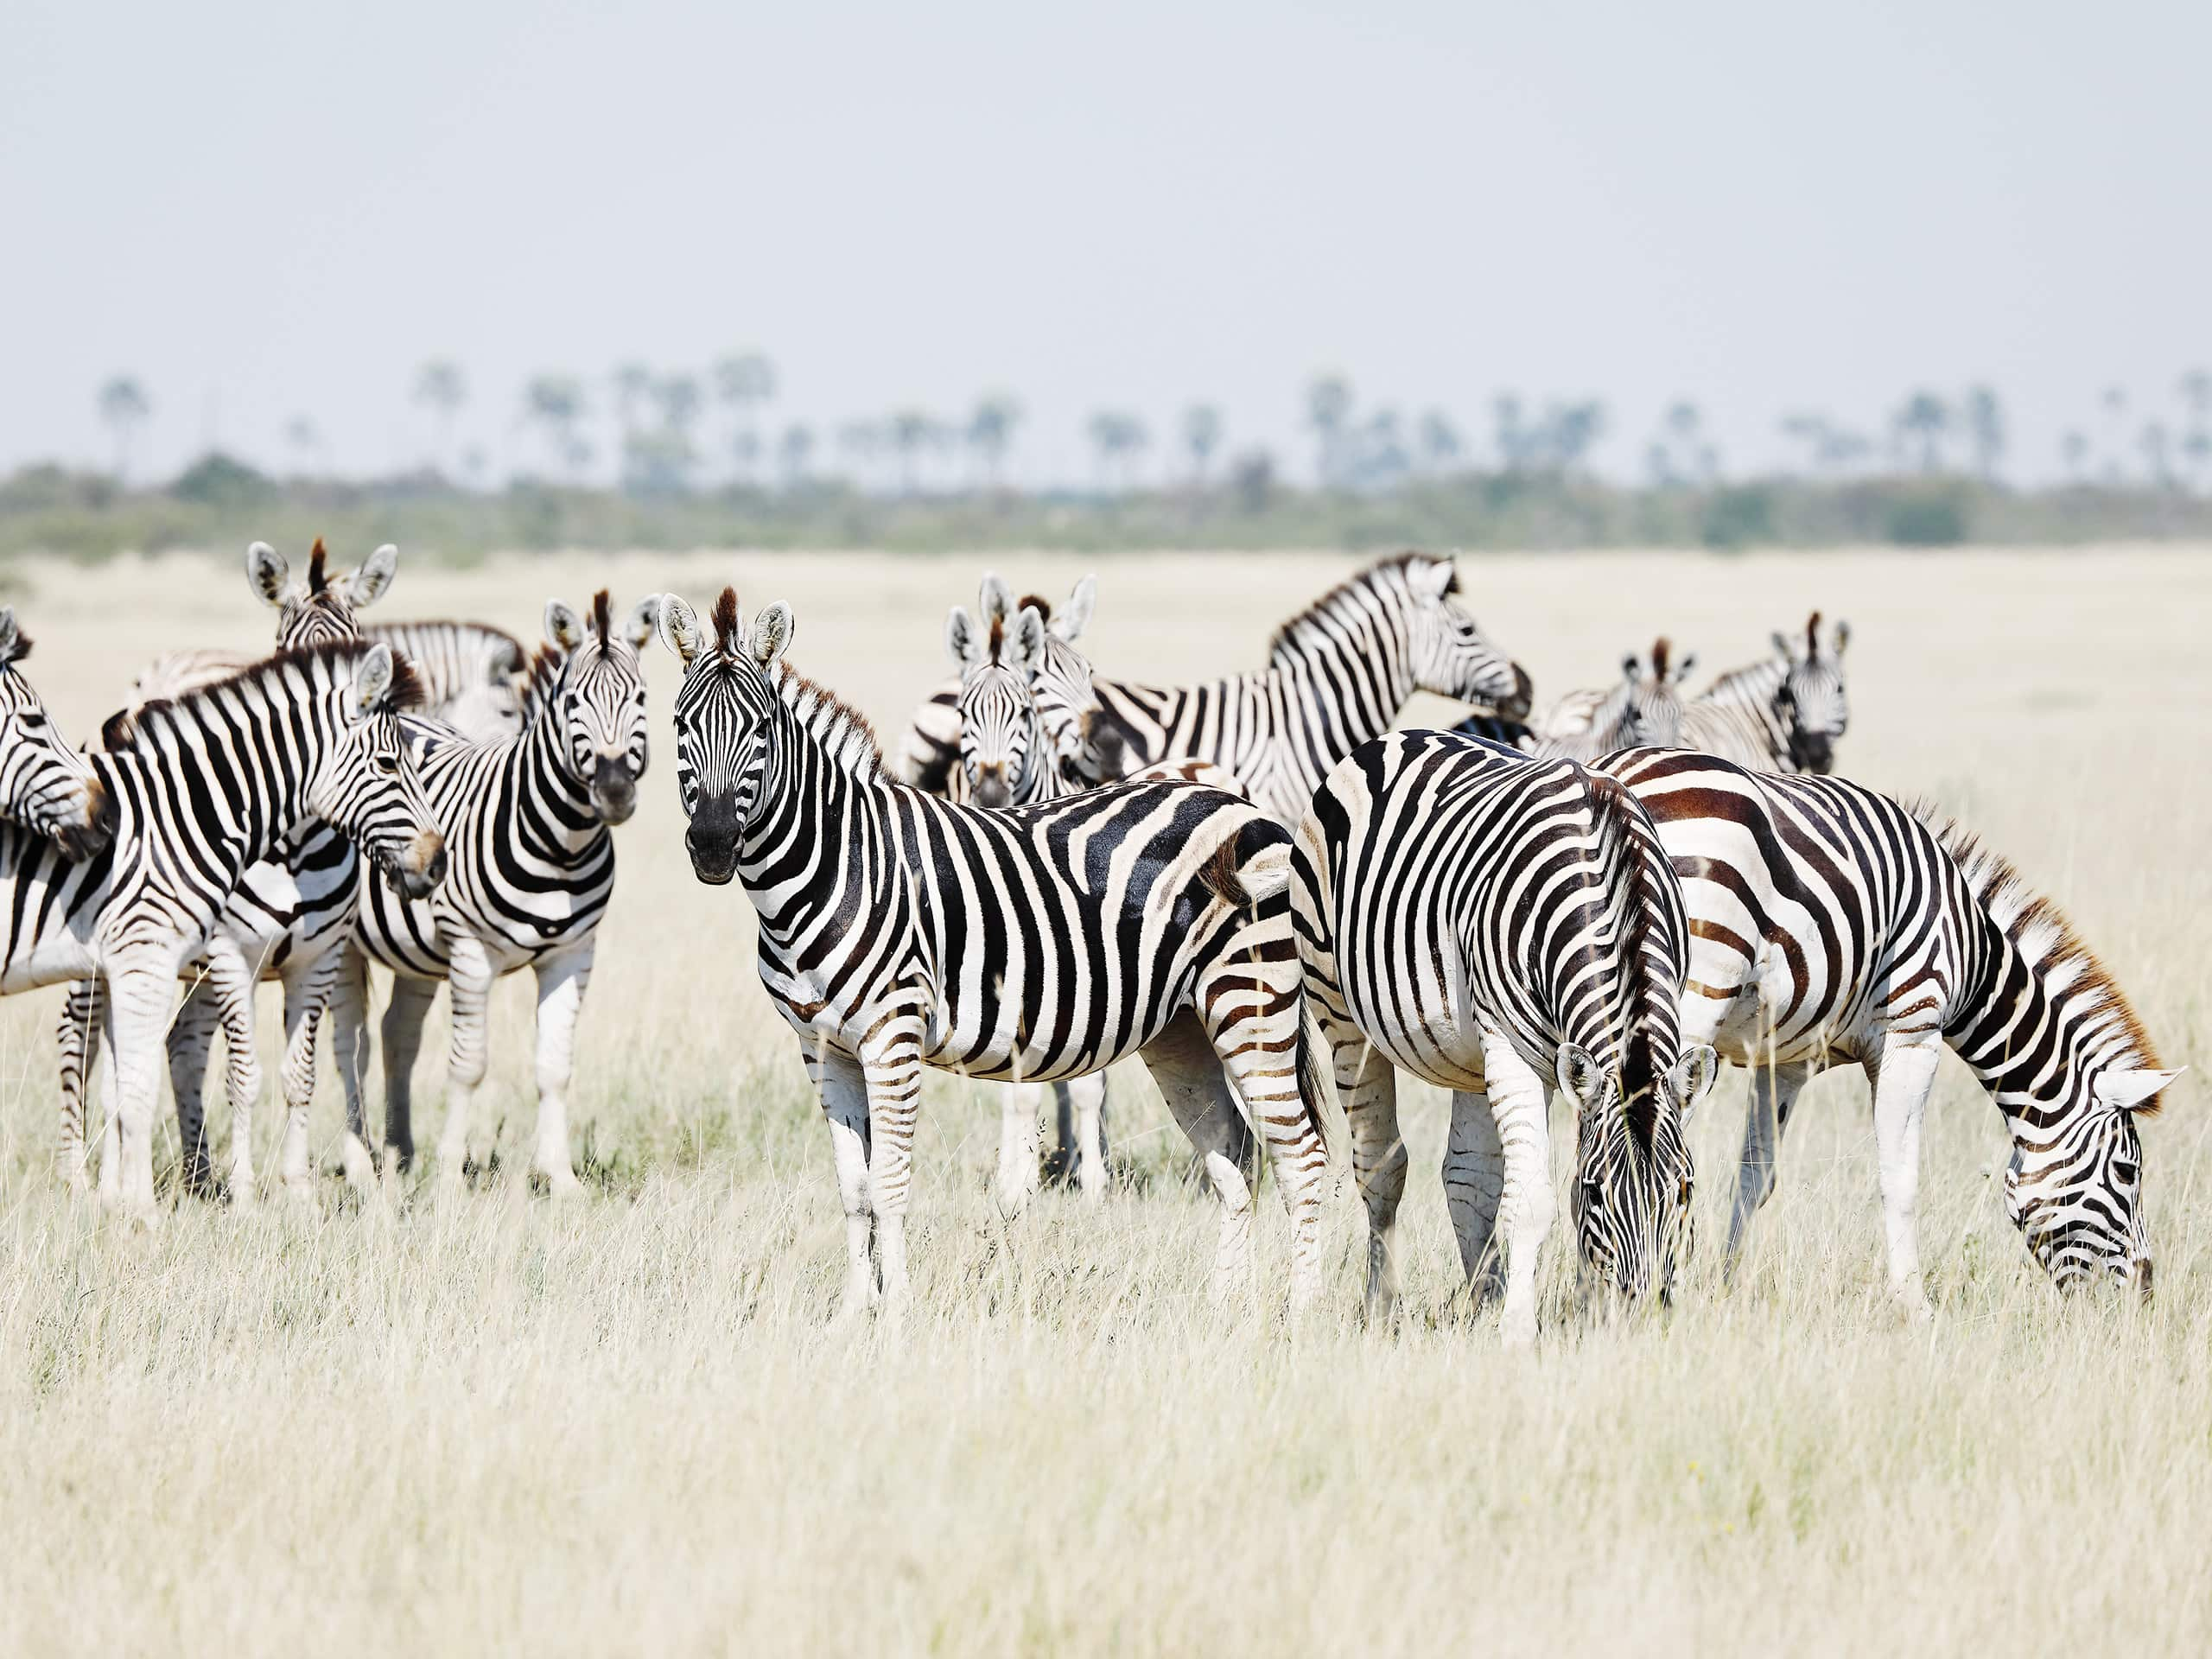 Herd of zebras grazing on the plains of Botswana. Photo by Elsa Young.